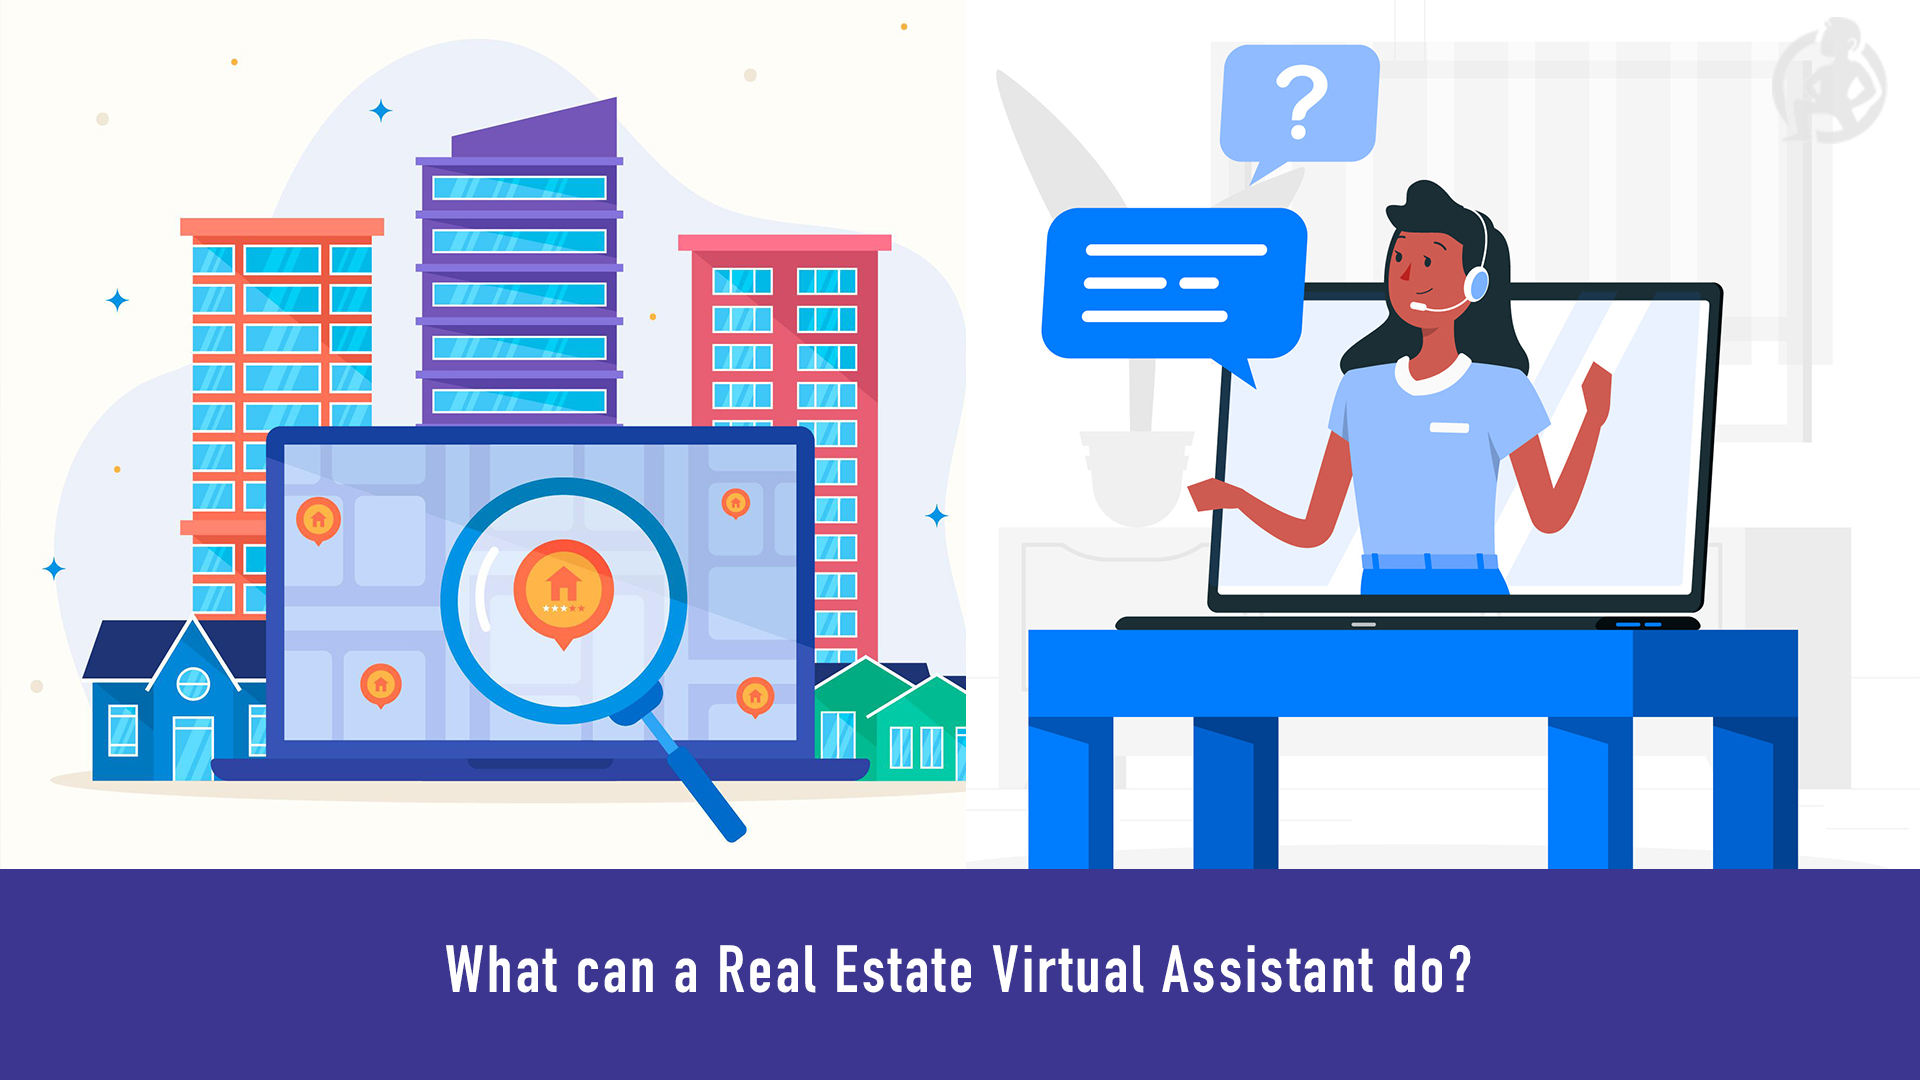 422 What can a Real Estate Virtual Assistant do_